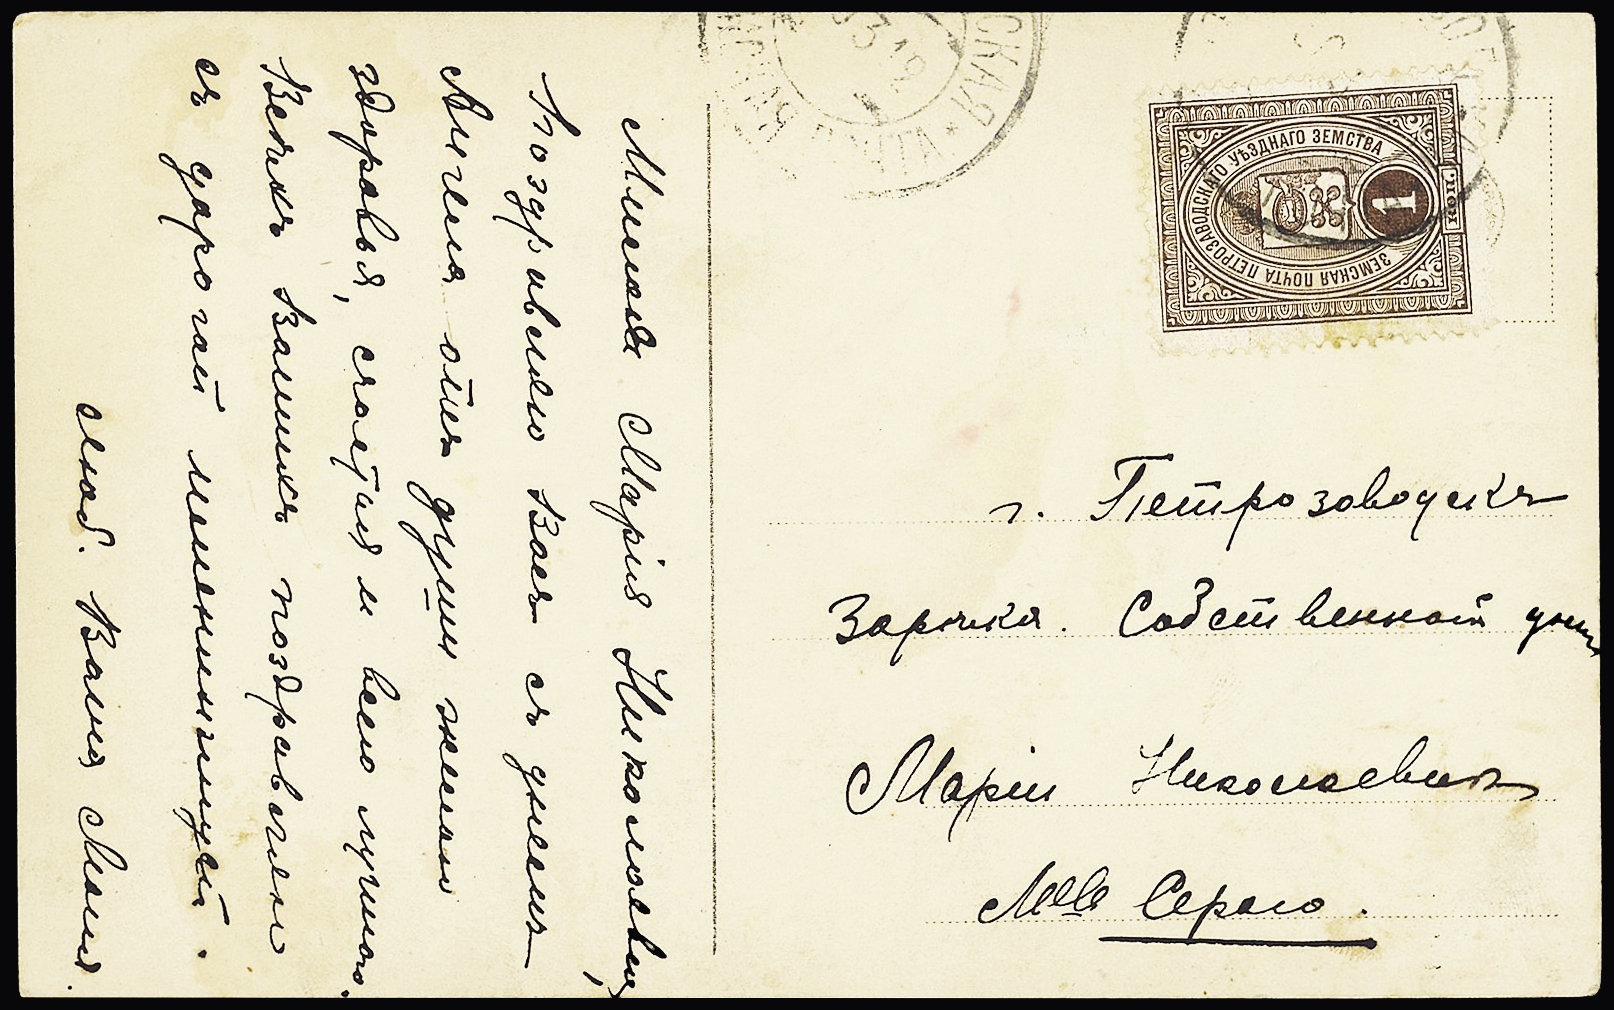 Lot 525 - Eastern Europe » RUSSIA - ZEMSTVOS » Petrozavodsk (Olonets Government)  -  Le Timbre Classique SA SALE ON OFFERS N ° 37 PARIS